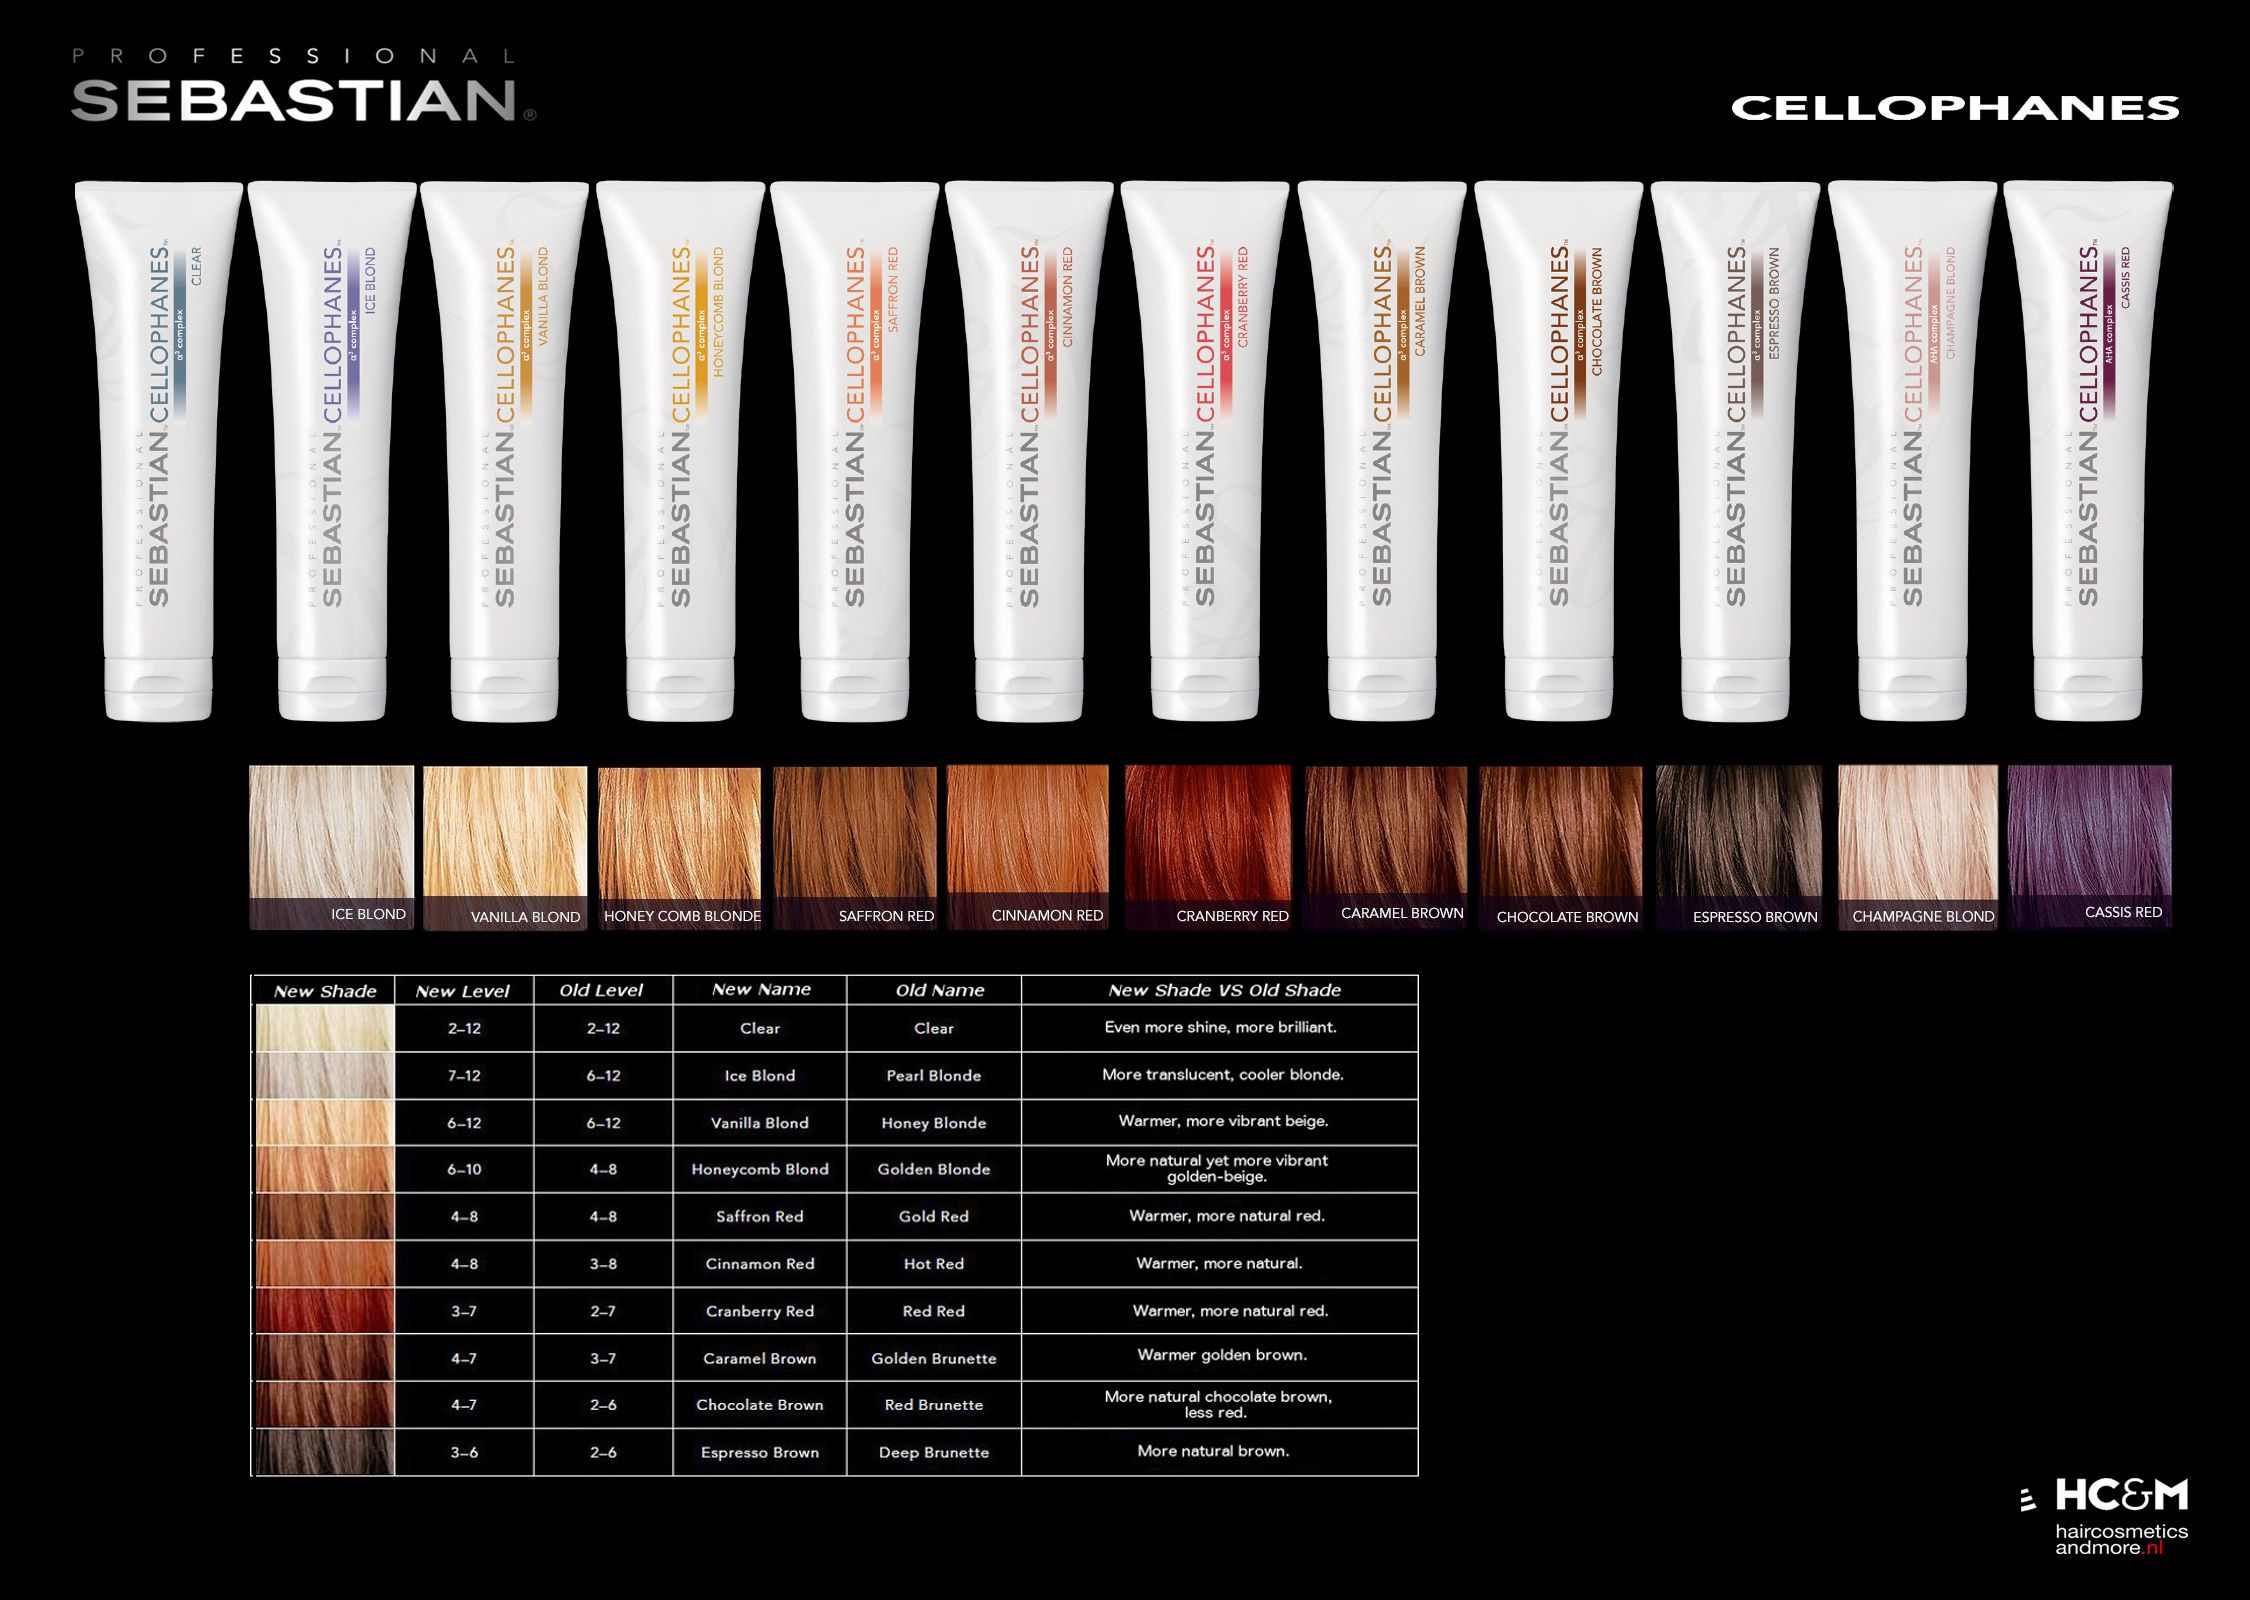 cellophane sebastian  Sebastian Professional Cellophanes Color Chart. | Hair products in ...